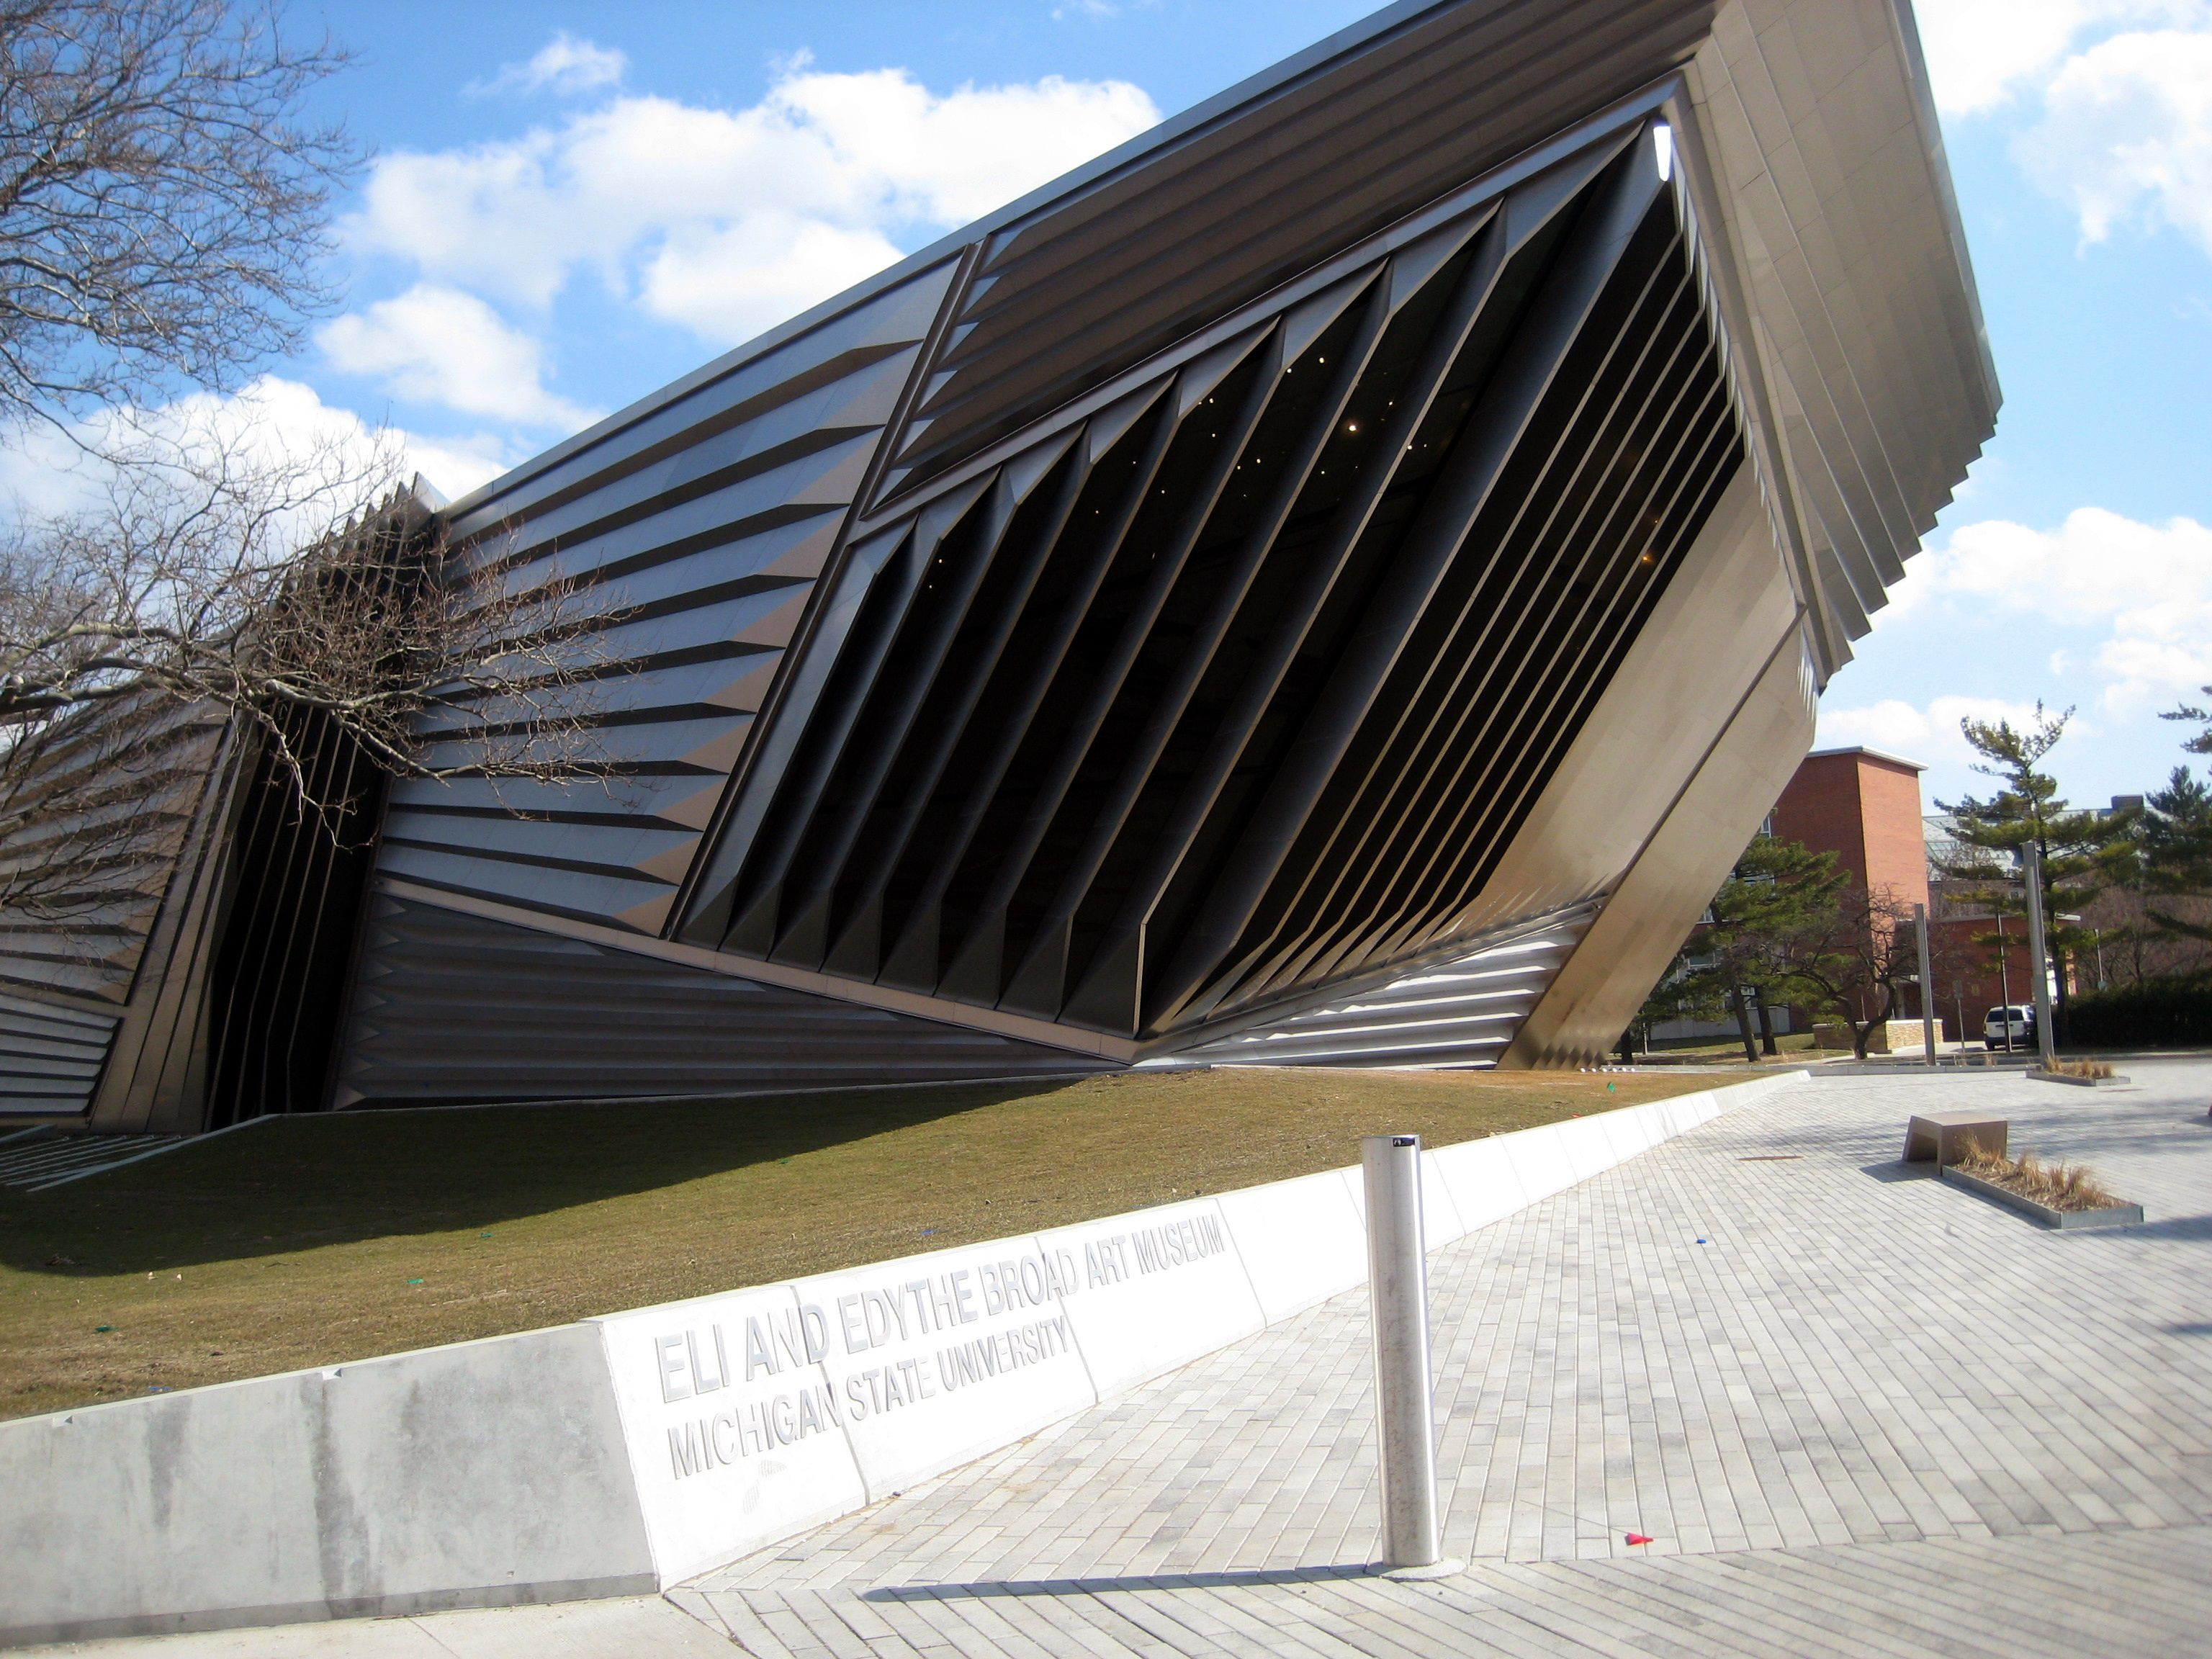 Eli and Edythe Broad Museum at Michigan State University